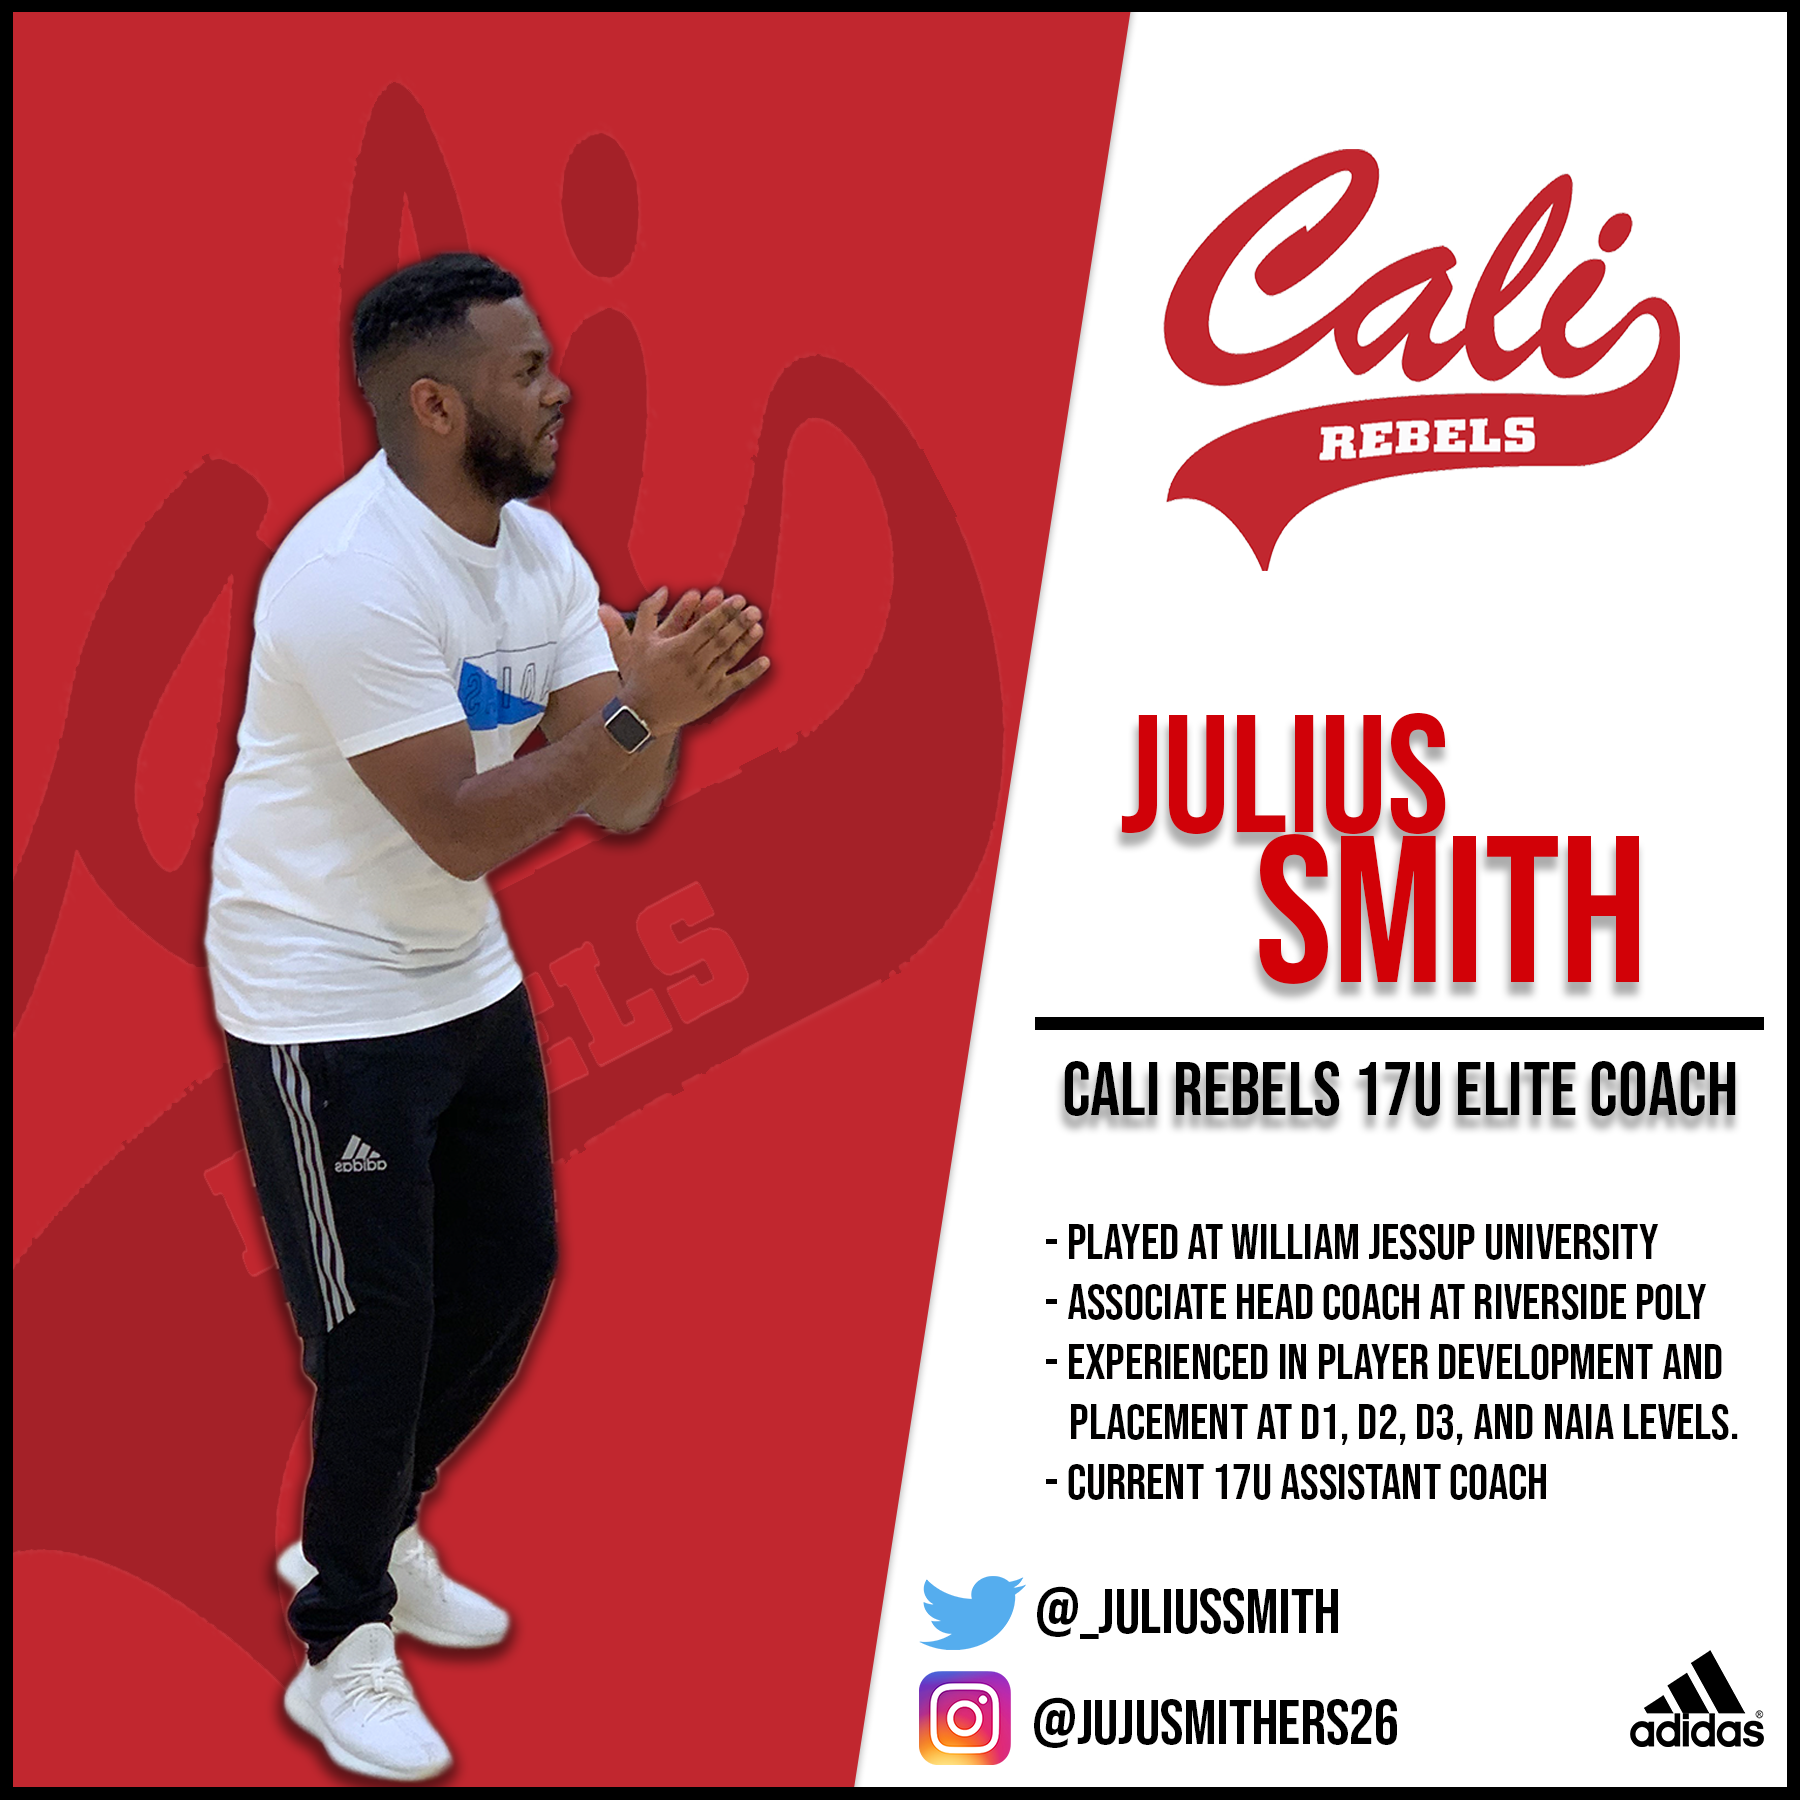 julious smith 17u